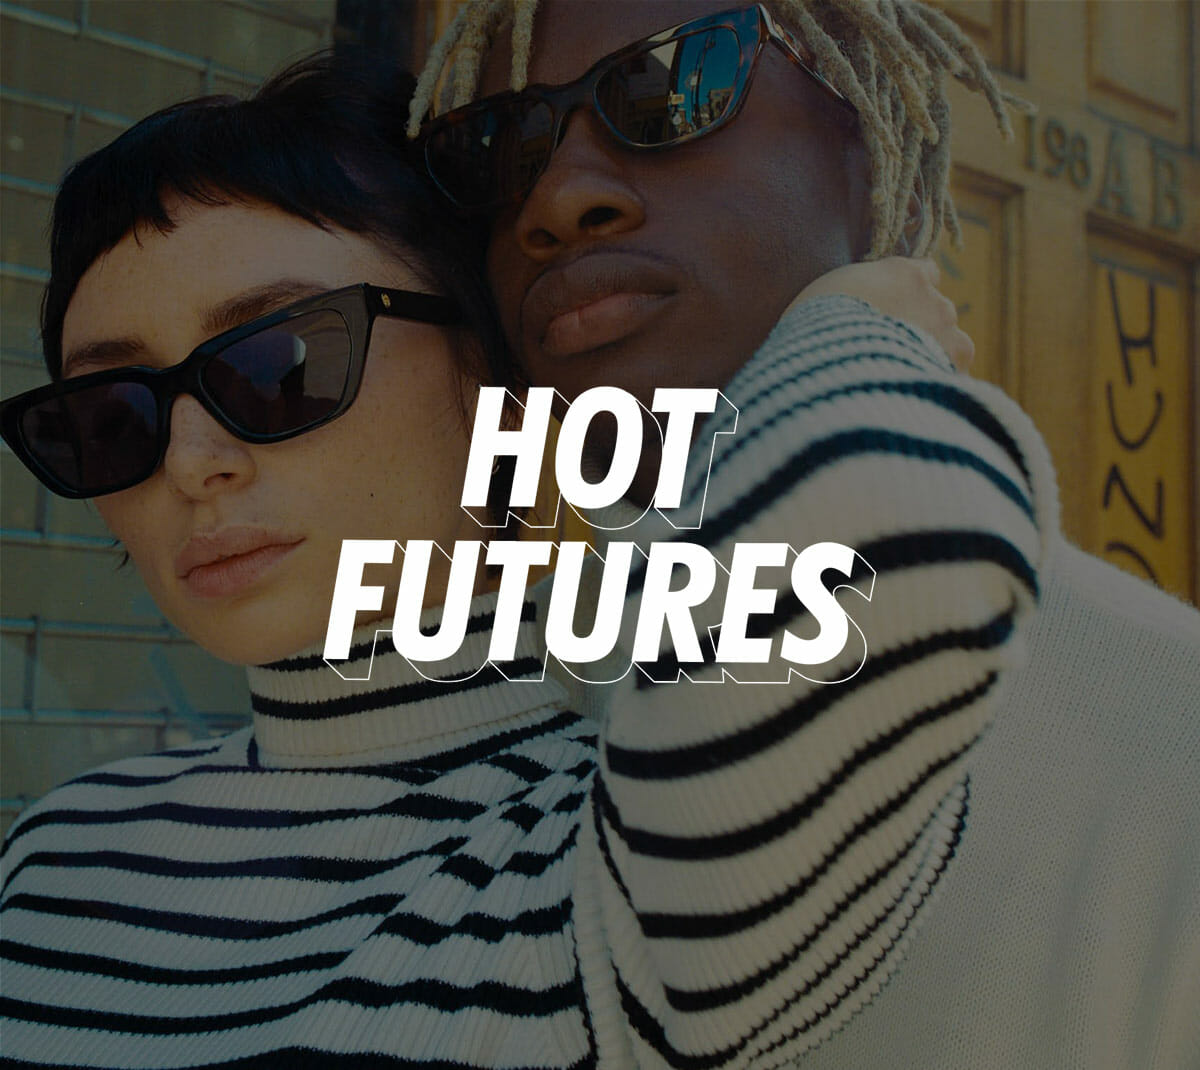 Hot futures logo